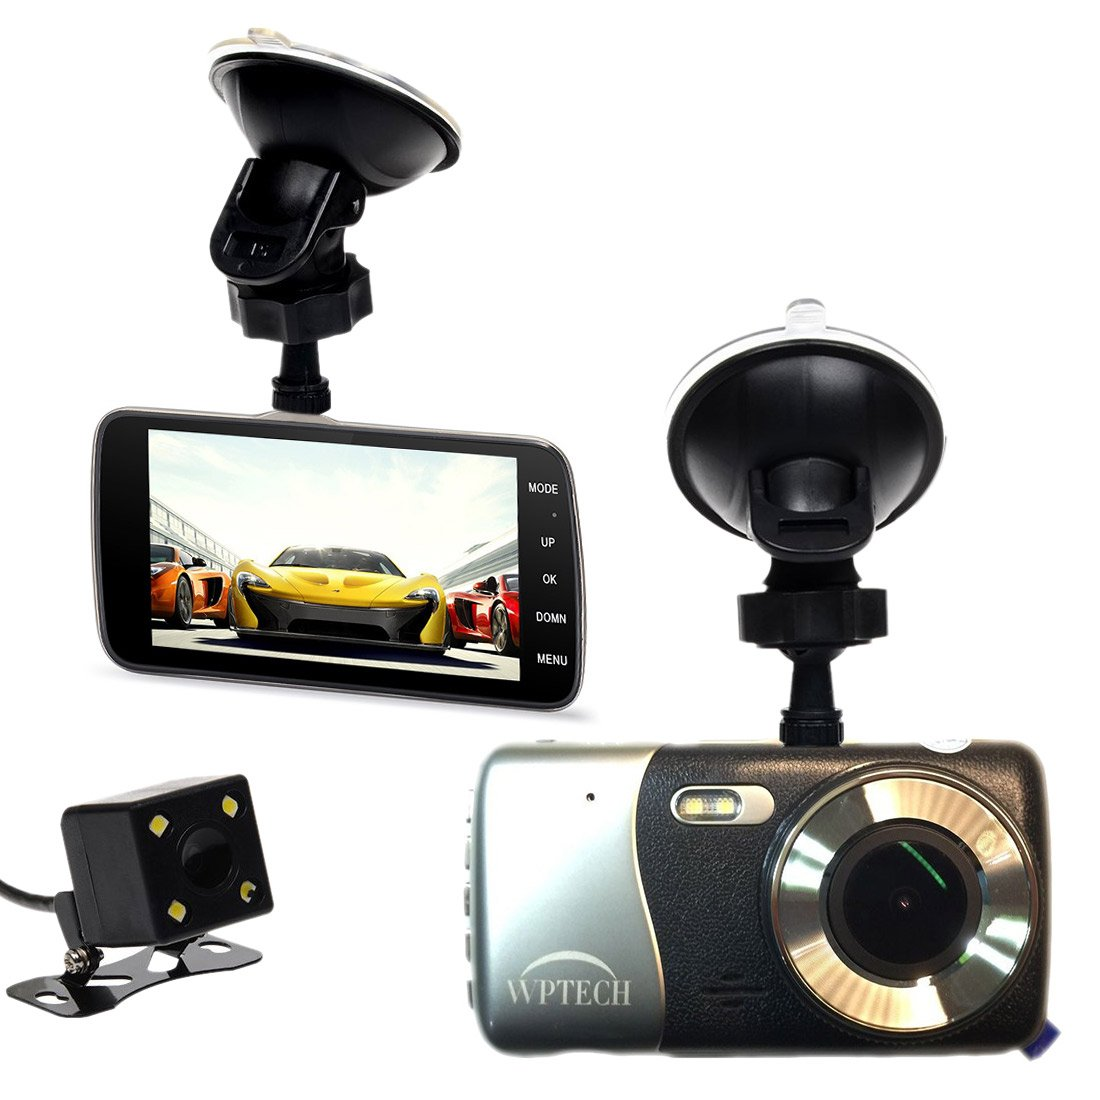 """WPTECH X600 4"""" IPS Screen FHD 1080P Car Dash Cam, F2.0 Big Eye Car Camcorder Front and Rear Camera DVR, Slim Alloy Car Black Box, Wide Angle 152 degree, Night Vision, LDWS, FCWS Functions"""